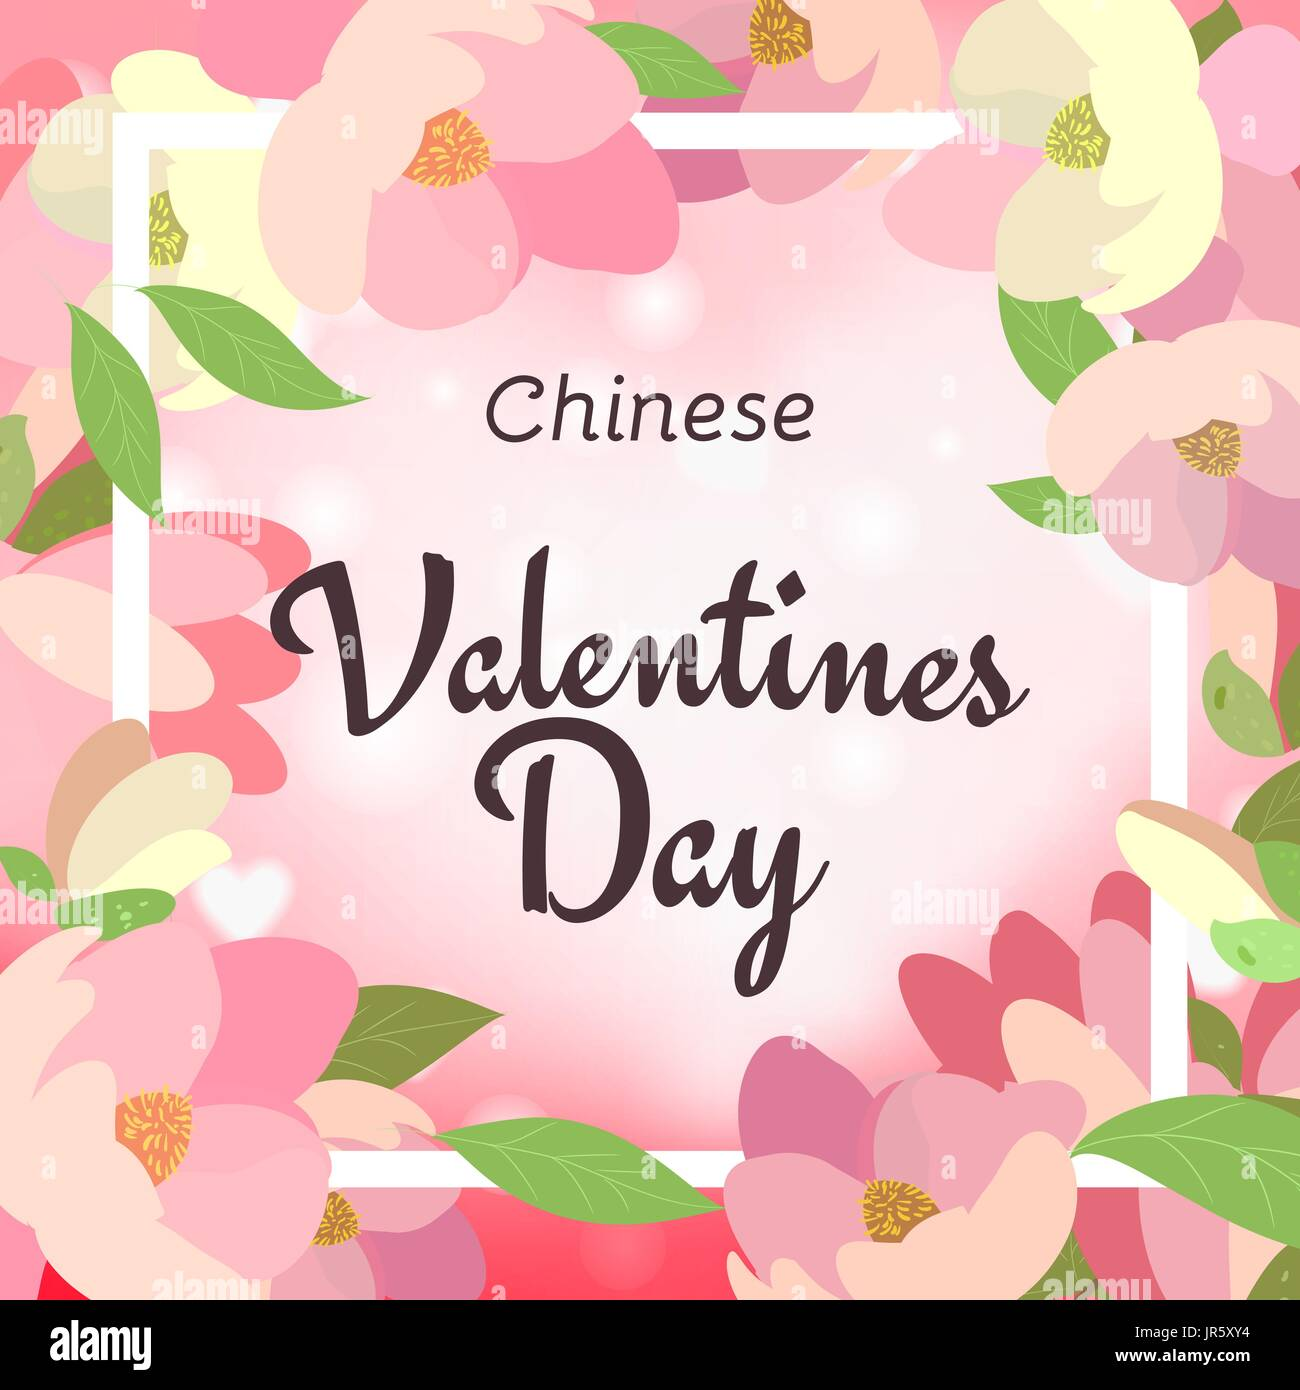 Holiday Greetings Illustration Chinese Valentines Day Vector Stock